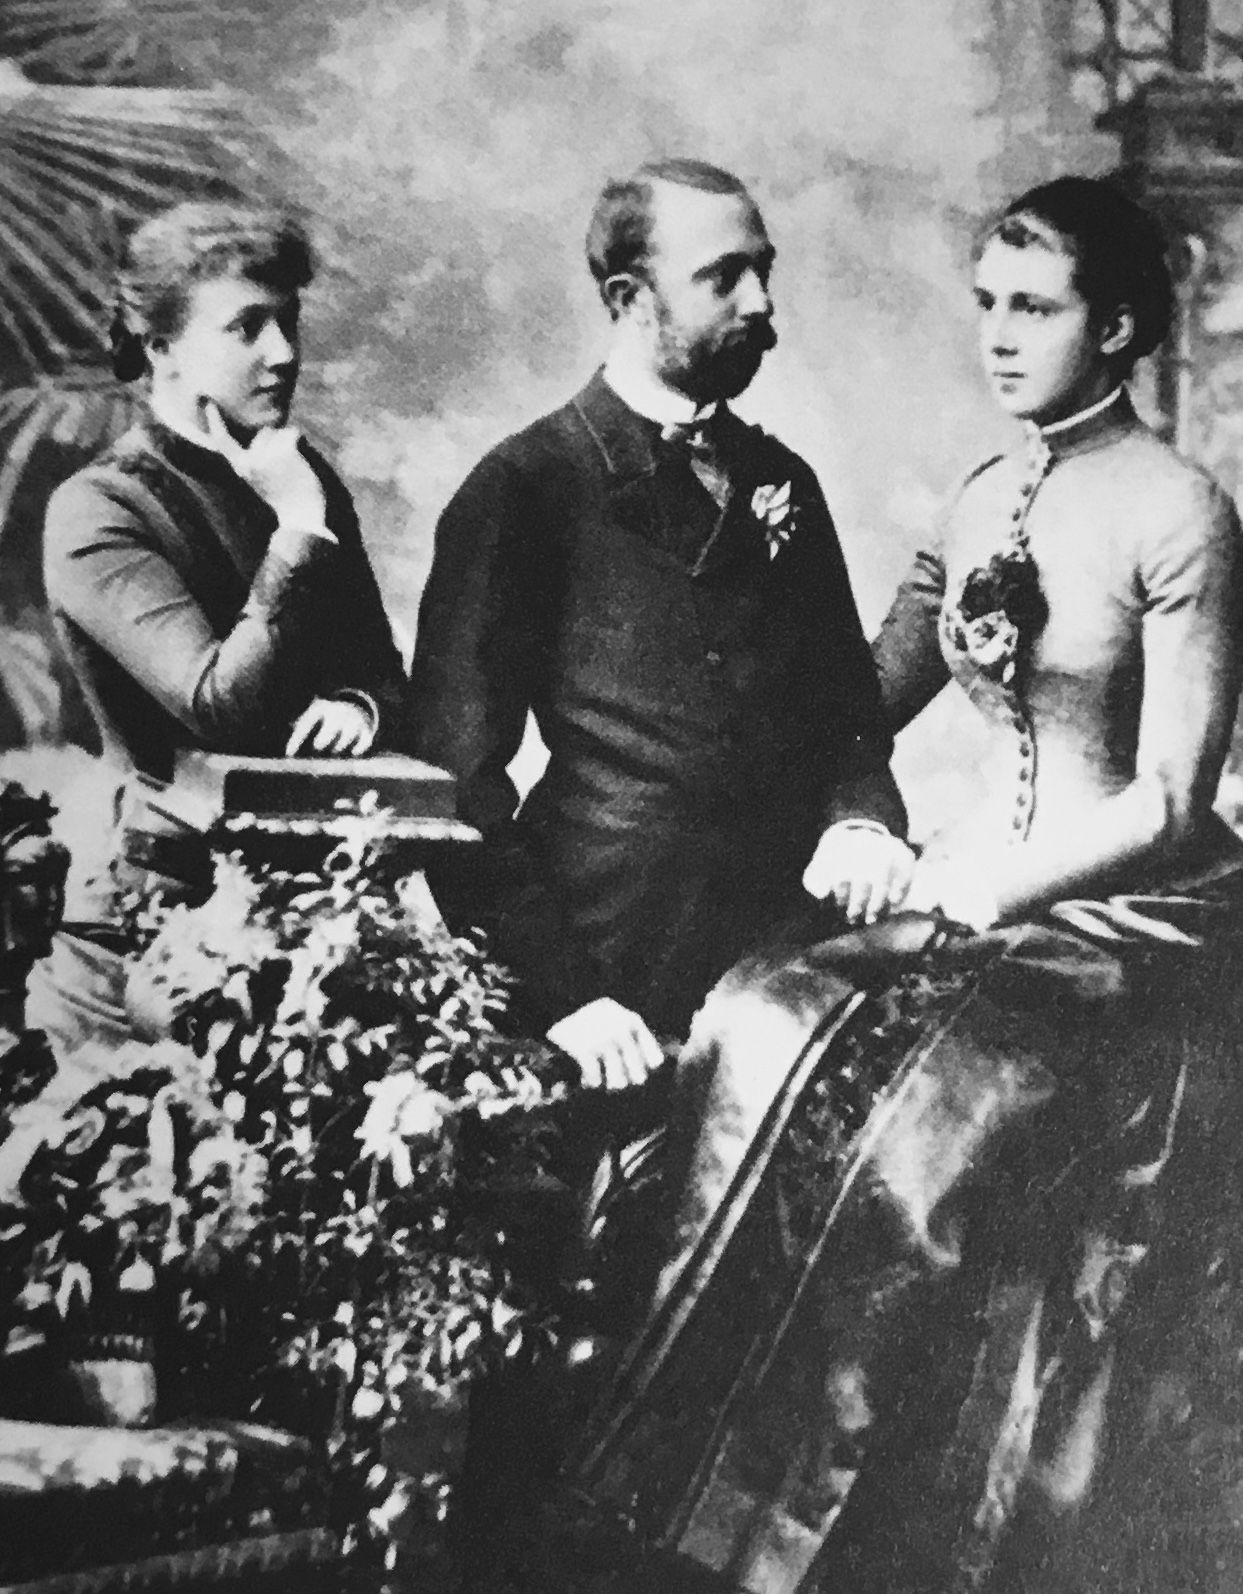 Duke Roberto I Of Parma With His Sister In Law Infanta Adelgundes Of Portugal 1858 1946 Right And His Second Wife In Royal Family Royal House Sister In Law